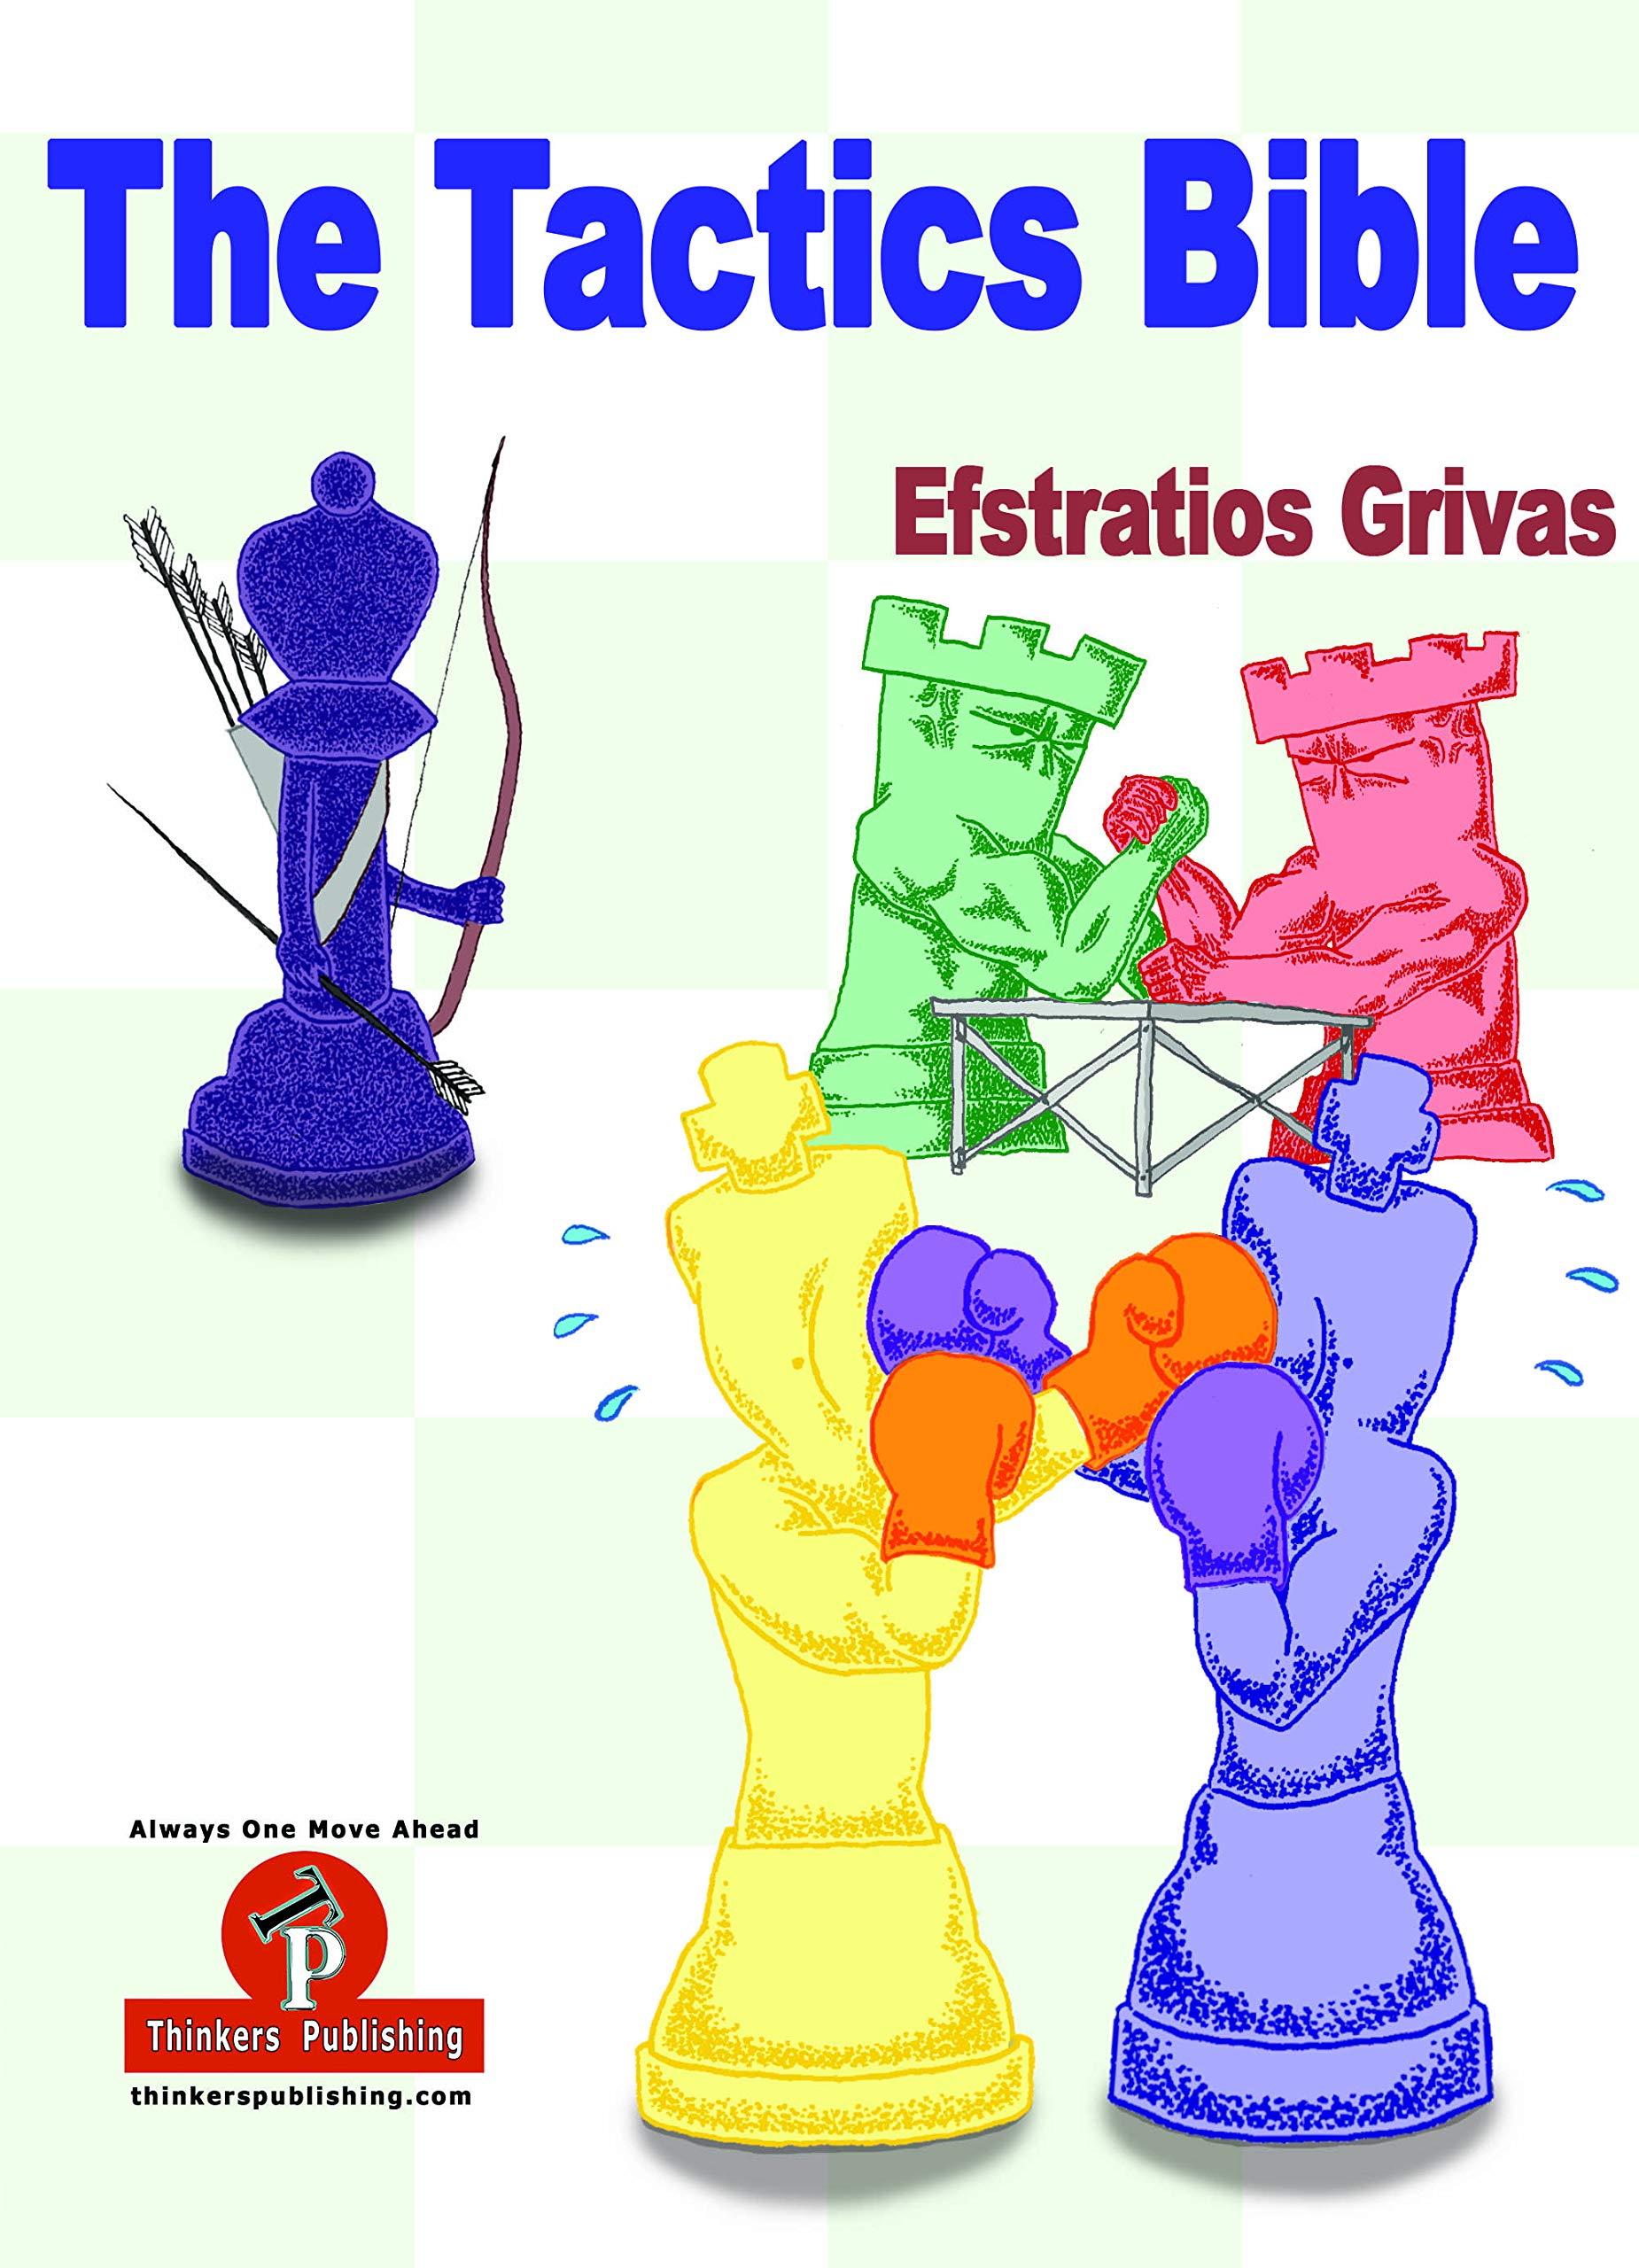 The Tactics Bible - Magnum Opus, Efstratios Grivas, Thinker's Publishing, 1st March 2019, ISBN-13  :  978-9492510433